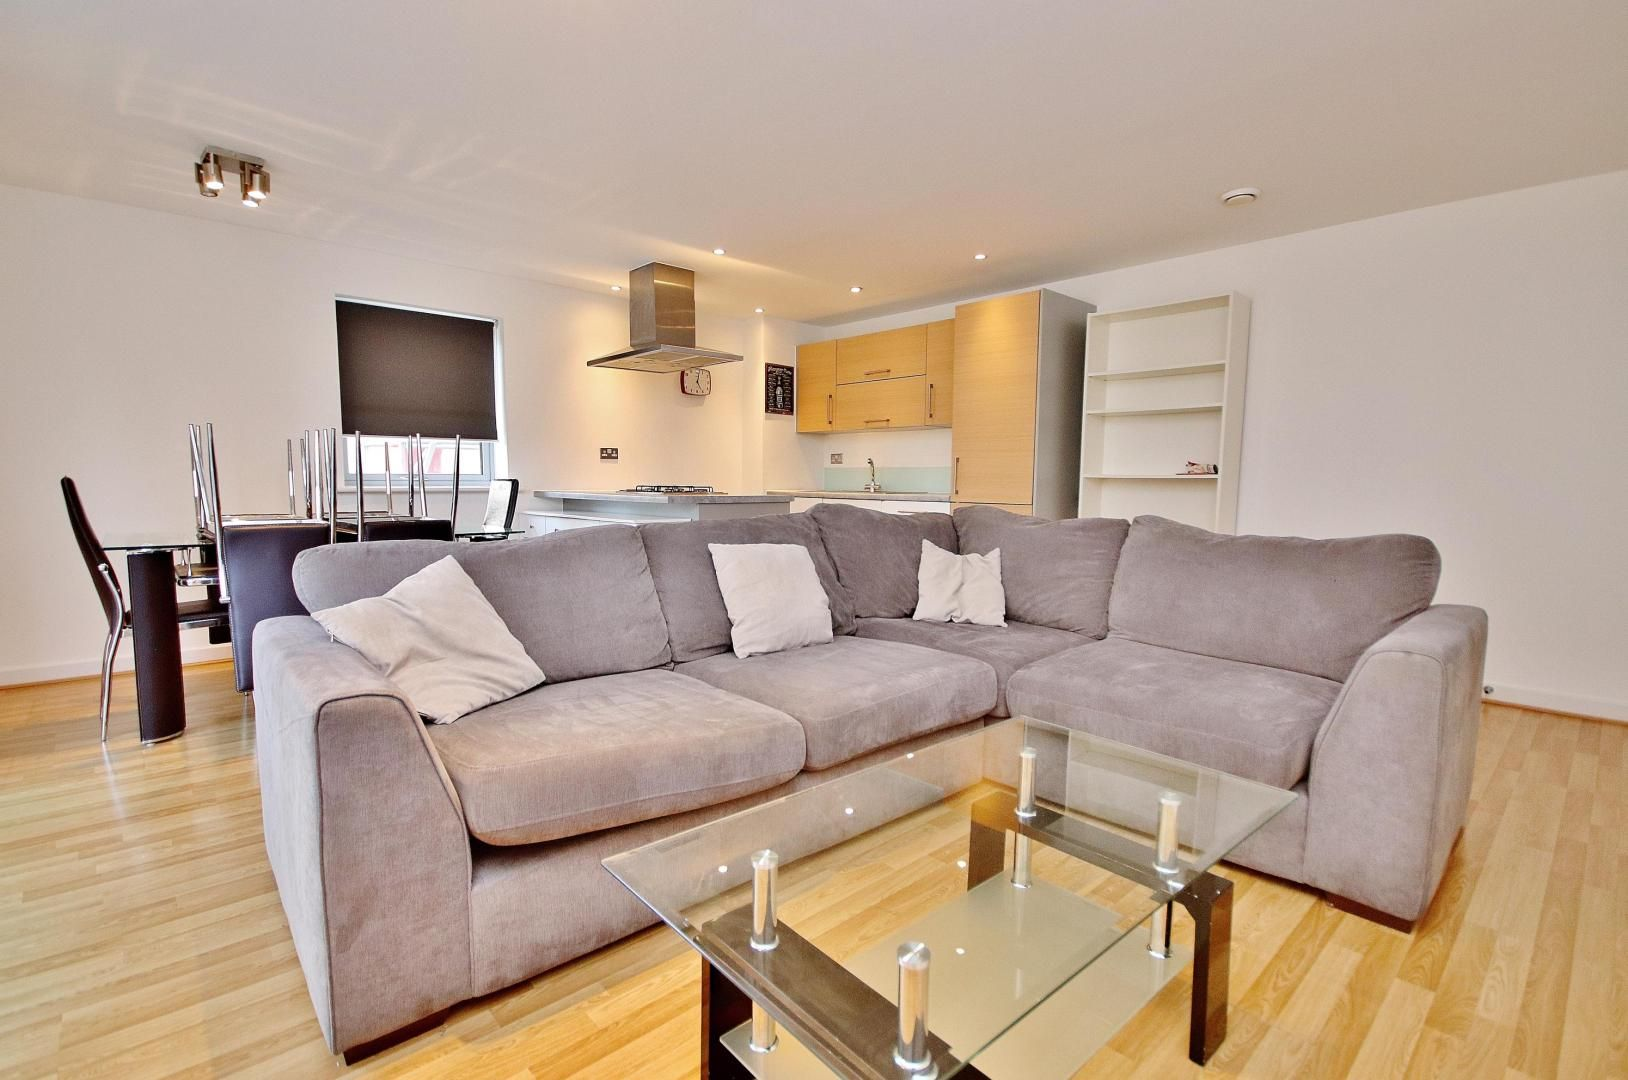 3 bed flat to rent in Ellison Apartments, E3